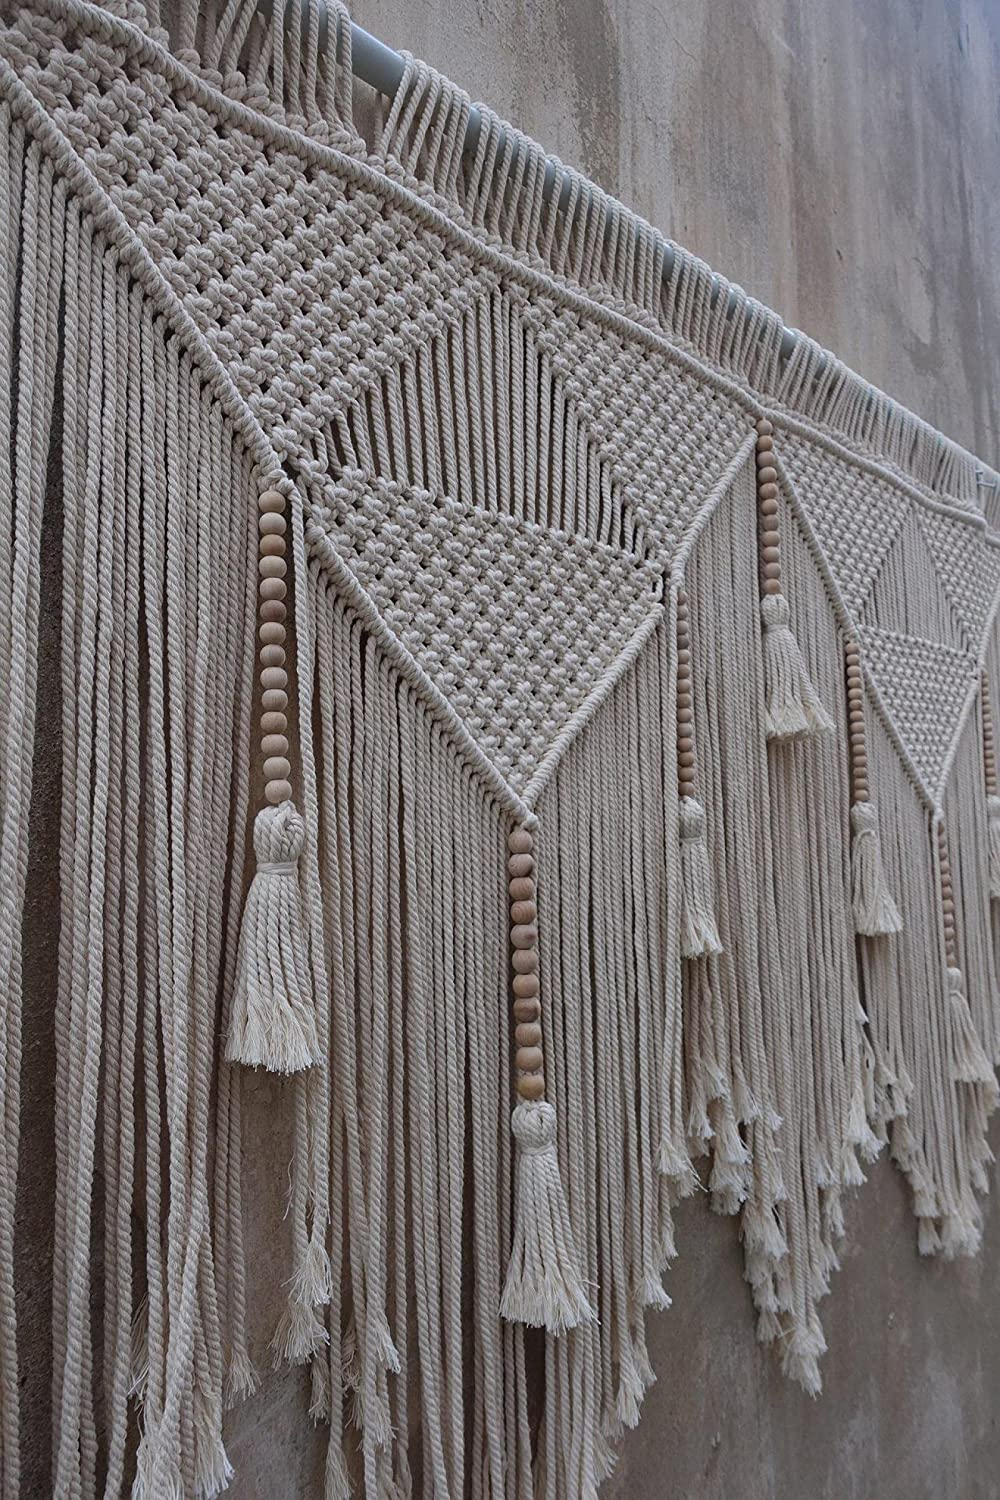 """""""N A""""Amazon Source Branded goods Hot Sales Selling Home Pure Wall Hand-Woven Tapestr"""